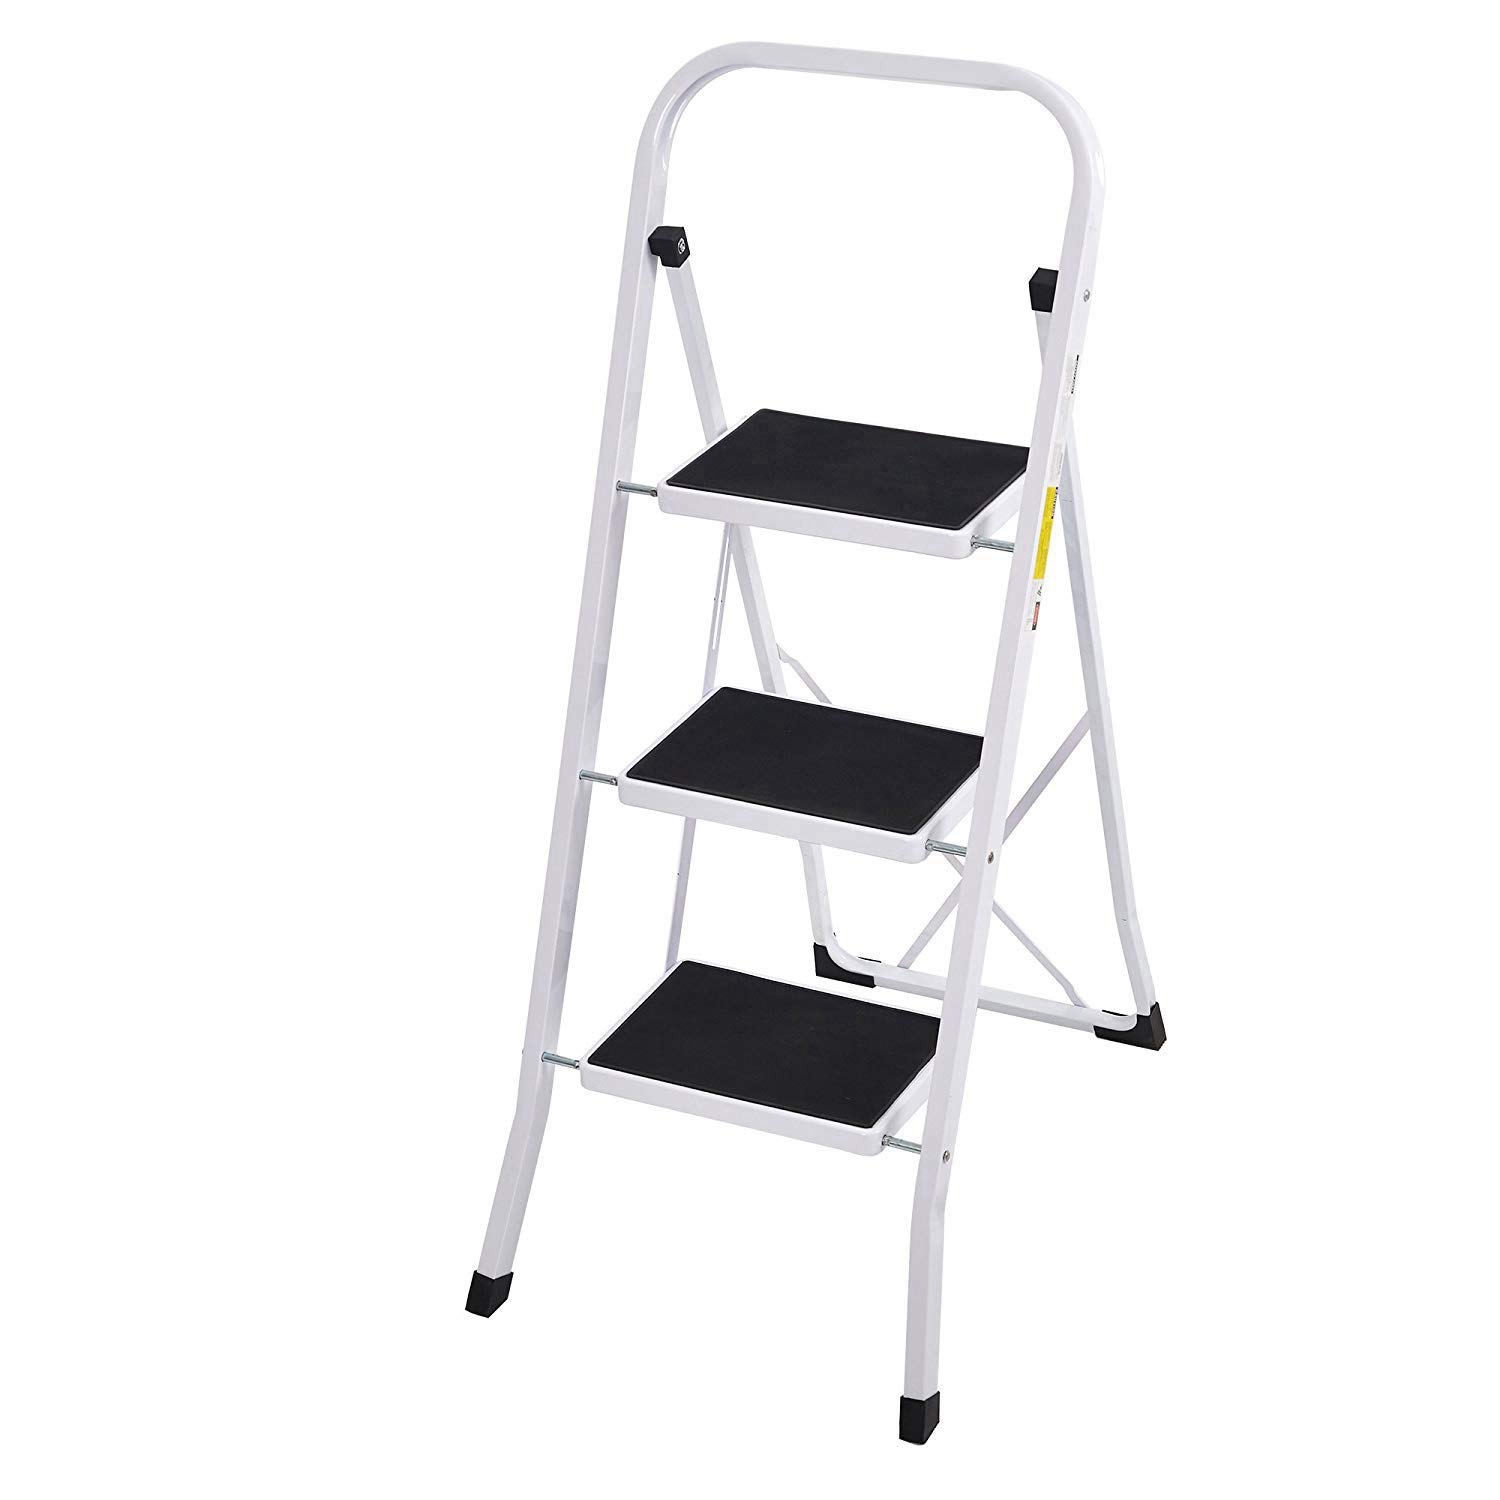 Livebest Portable Folding Step Ladder 3 Step with Handgrip Safety Step Stool Light Weight for Home and Kitchen,330 lbs Capacity,Iron Steel